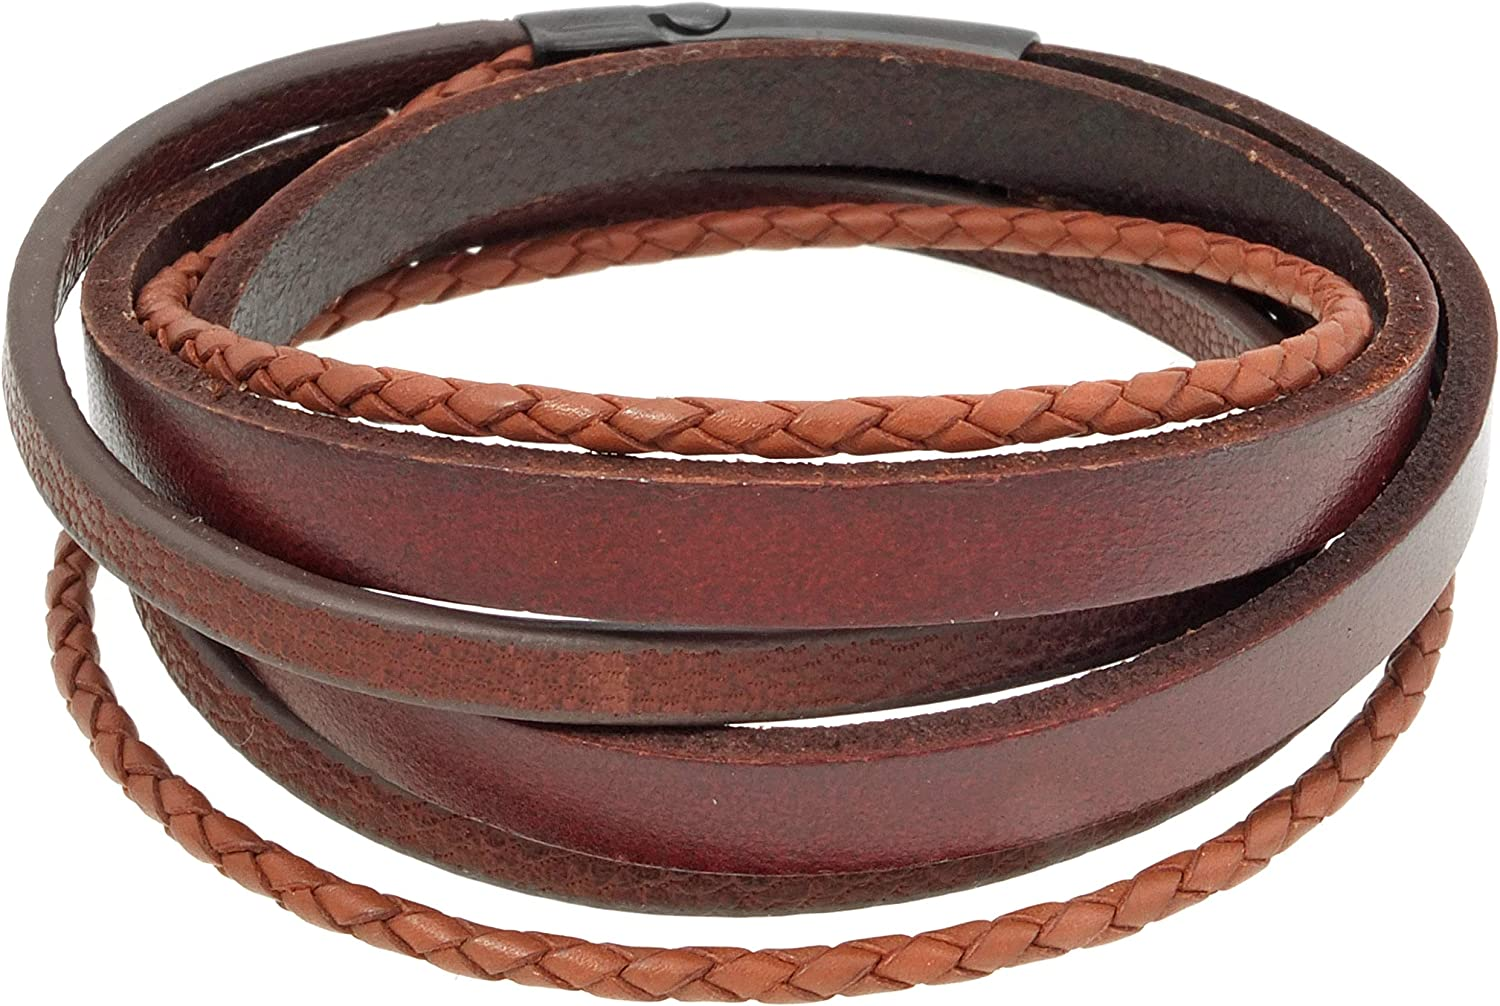 Multistranded Genuine Leather Bracelet with Magnetic Stainless Steel Closure